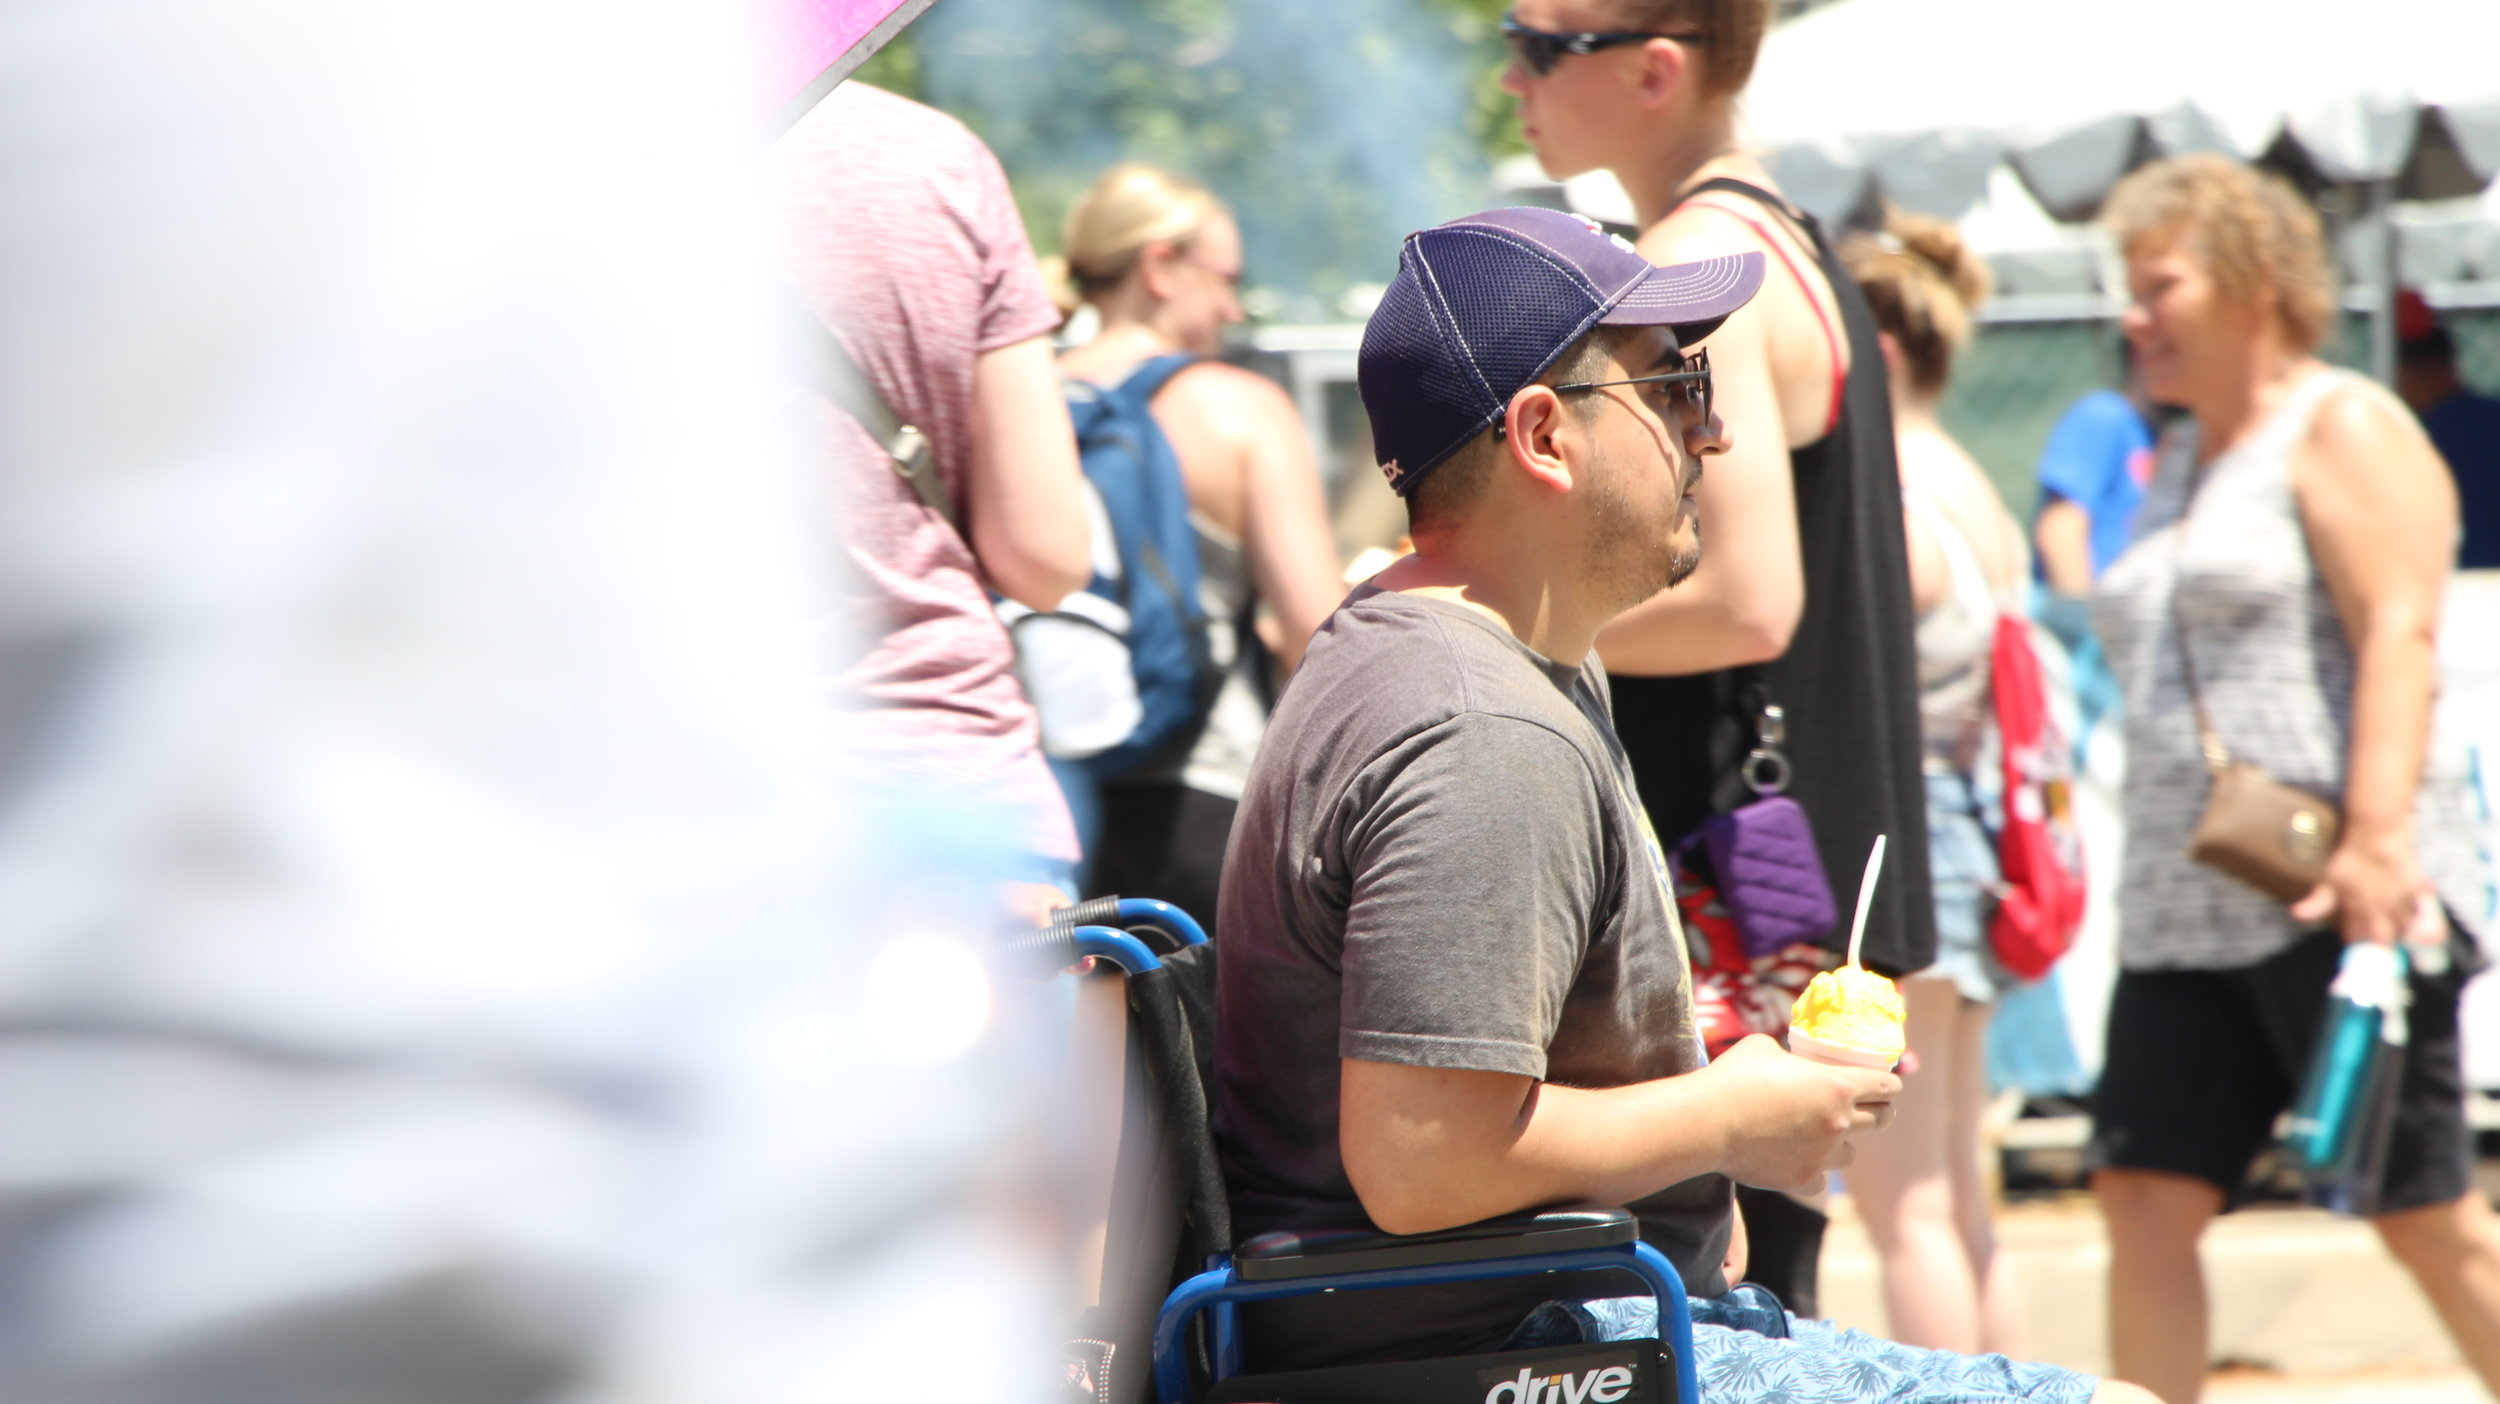 An attendee of the Taste enjoys the ice cream he bought from an accessible booth. Photo by Maia McDonald